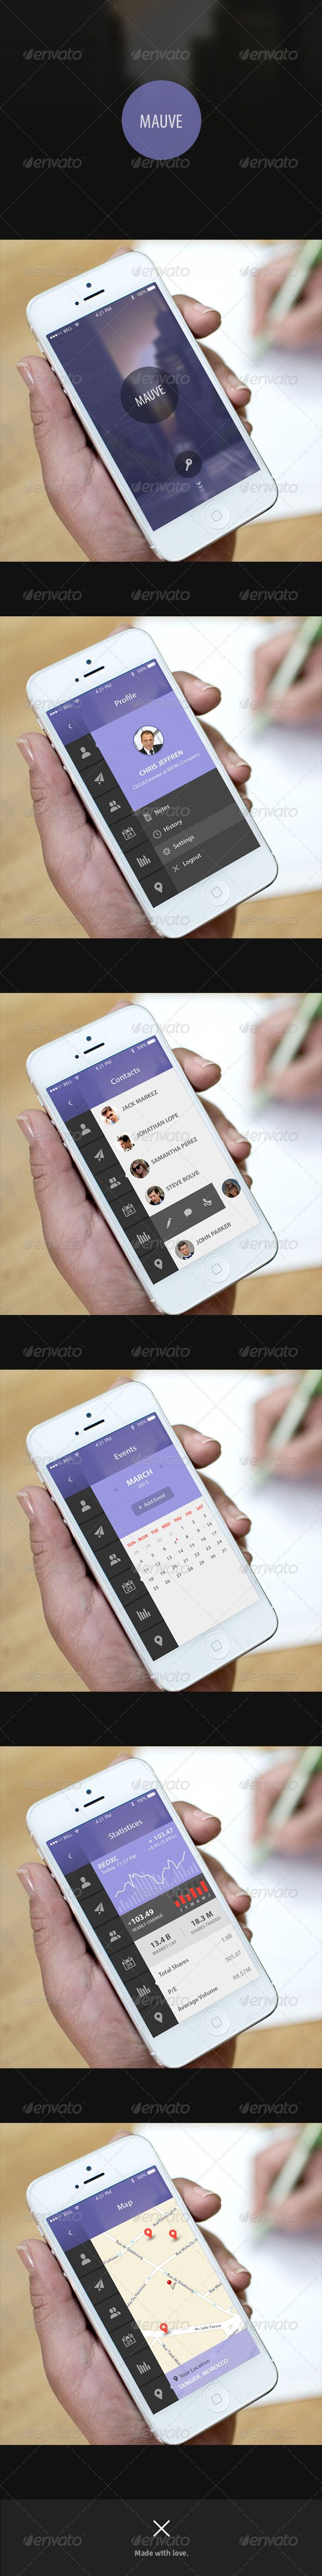 Management  App UI - Mauve  #GraphicRiver          About:   They said… Flat isn't just simplicity, neither content and typography merged in a nice way, It's about putting the right things in the right place, right when you need them. Mauve is a new business management UI design that represents all the director's materials in one single app, Using s merge of silky flat design. And Mauve is designed to meet all quality that the right manager need.    Features:   Retina Display   100% Vector…